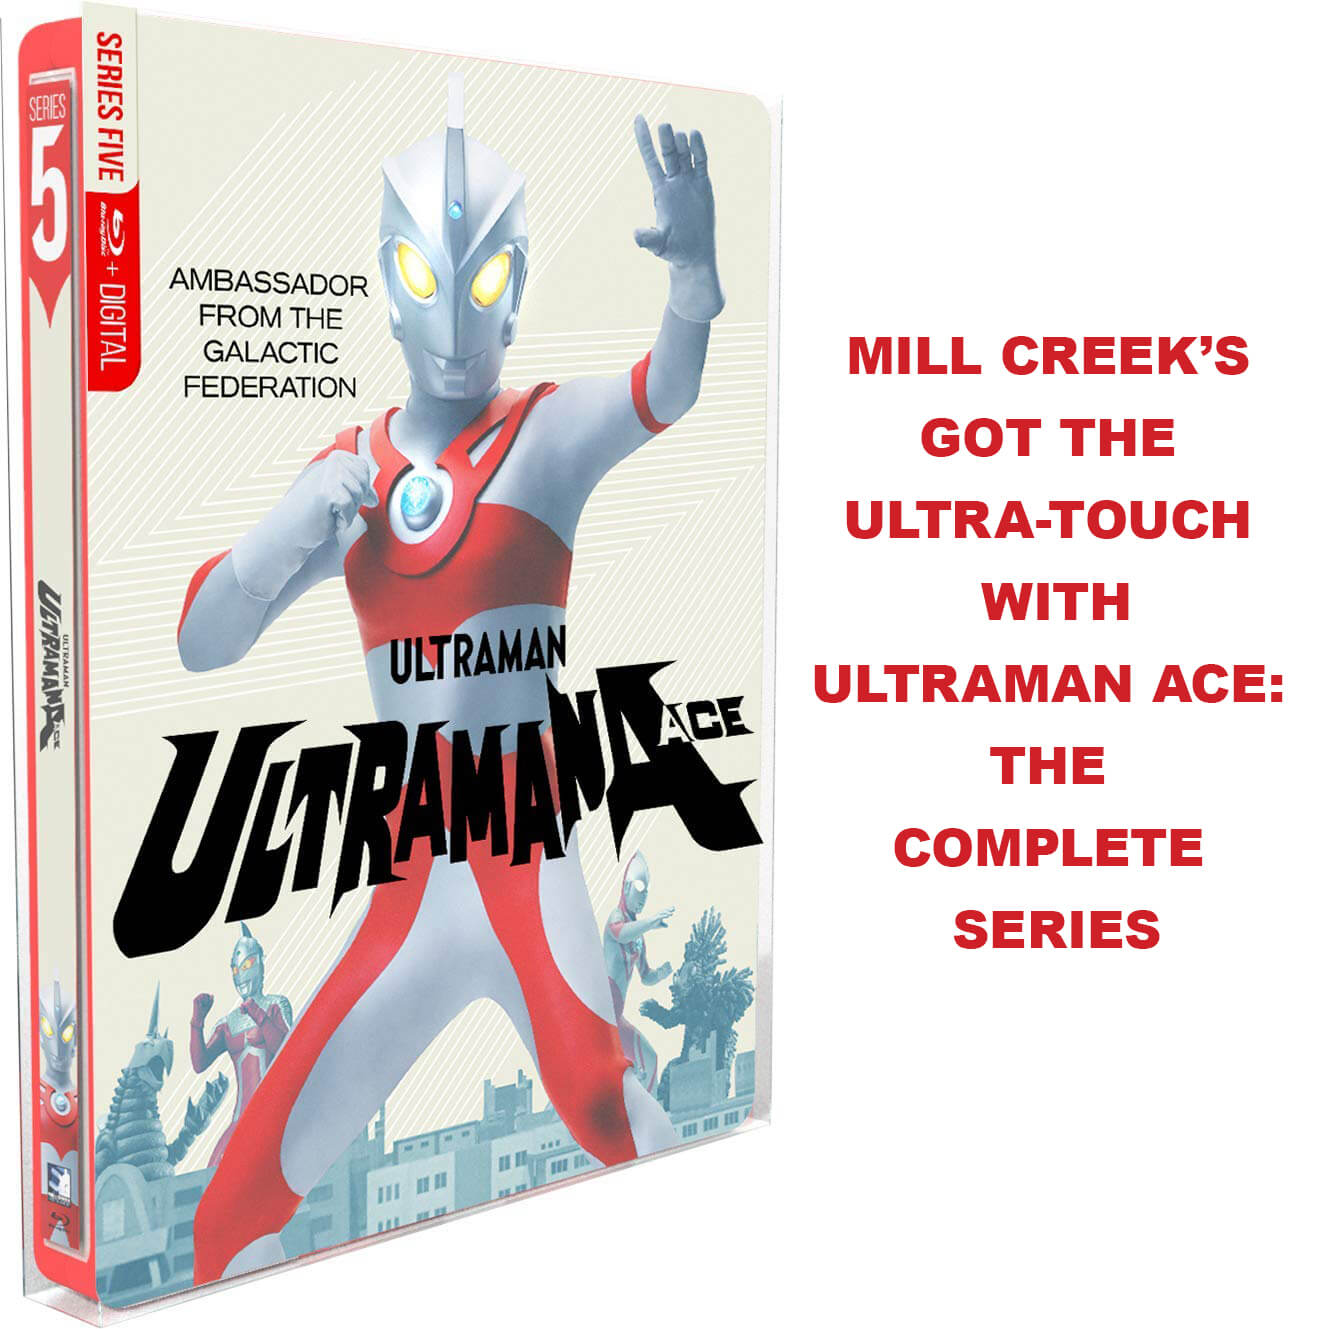 MILL CREEK'S GOT THE ULTRA-TOUCH WITHULTRAMAN ACE: THE COMPLETE SERIES